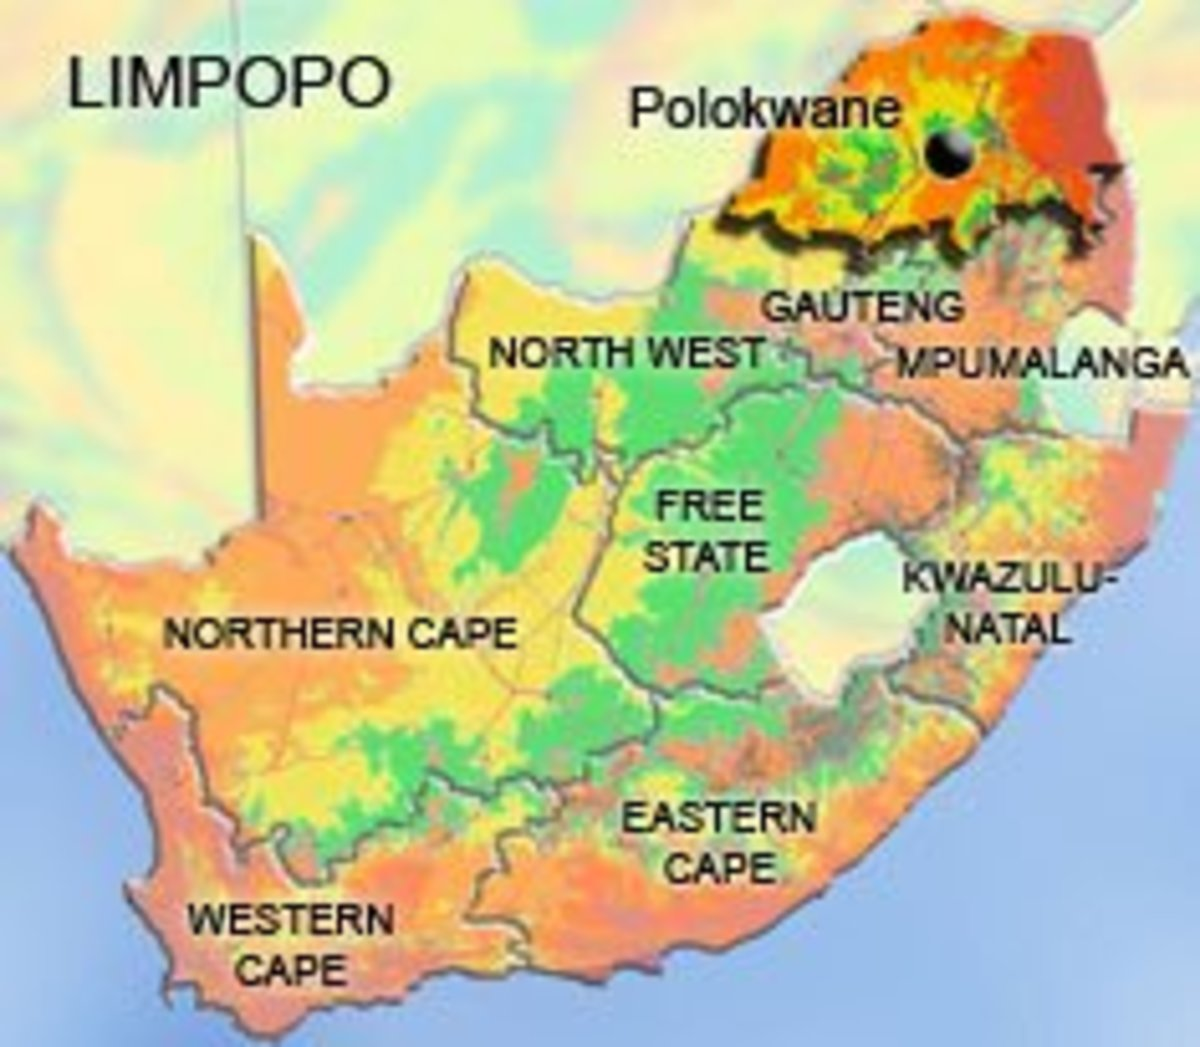 Limpopo takes up to 10.2% of South Africa's total Land Area